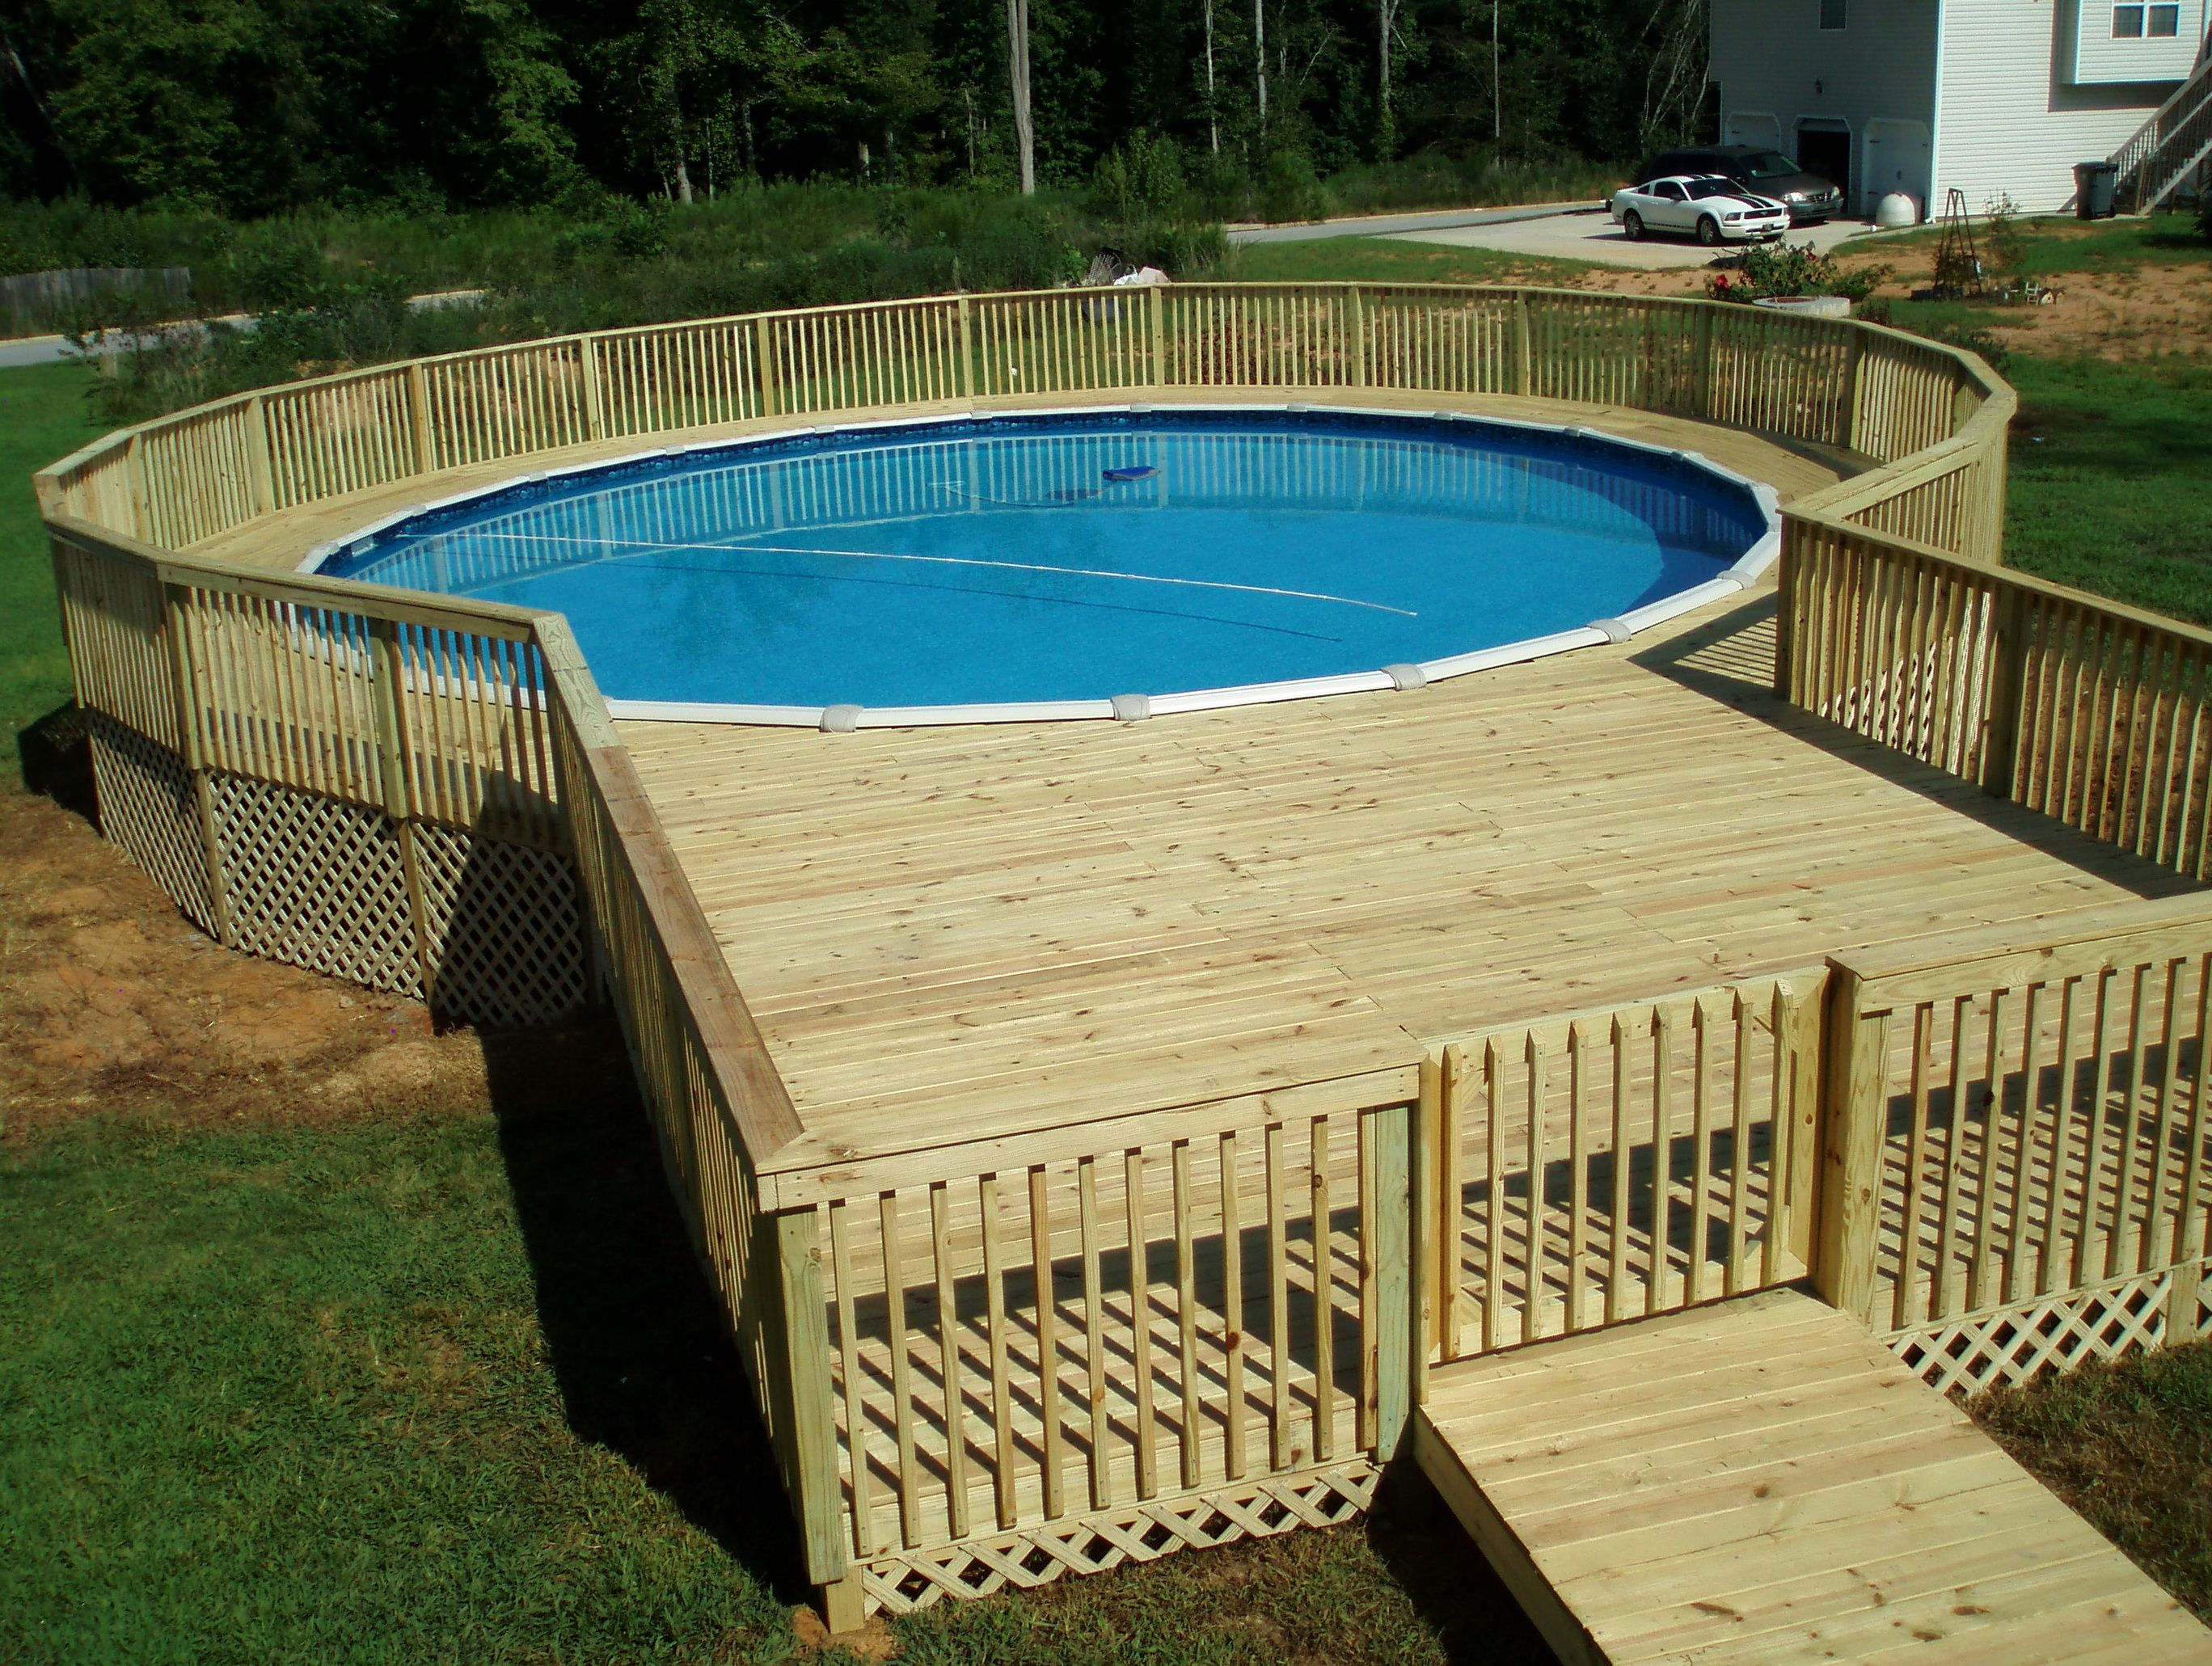 Swimming Pool Deck Designs Classy Designing A Deck Around An Above Ground Pool Home Design Ideas